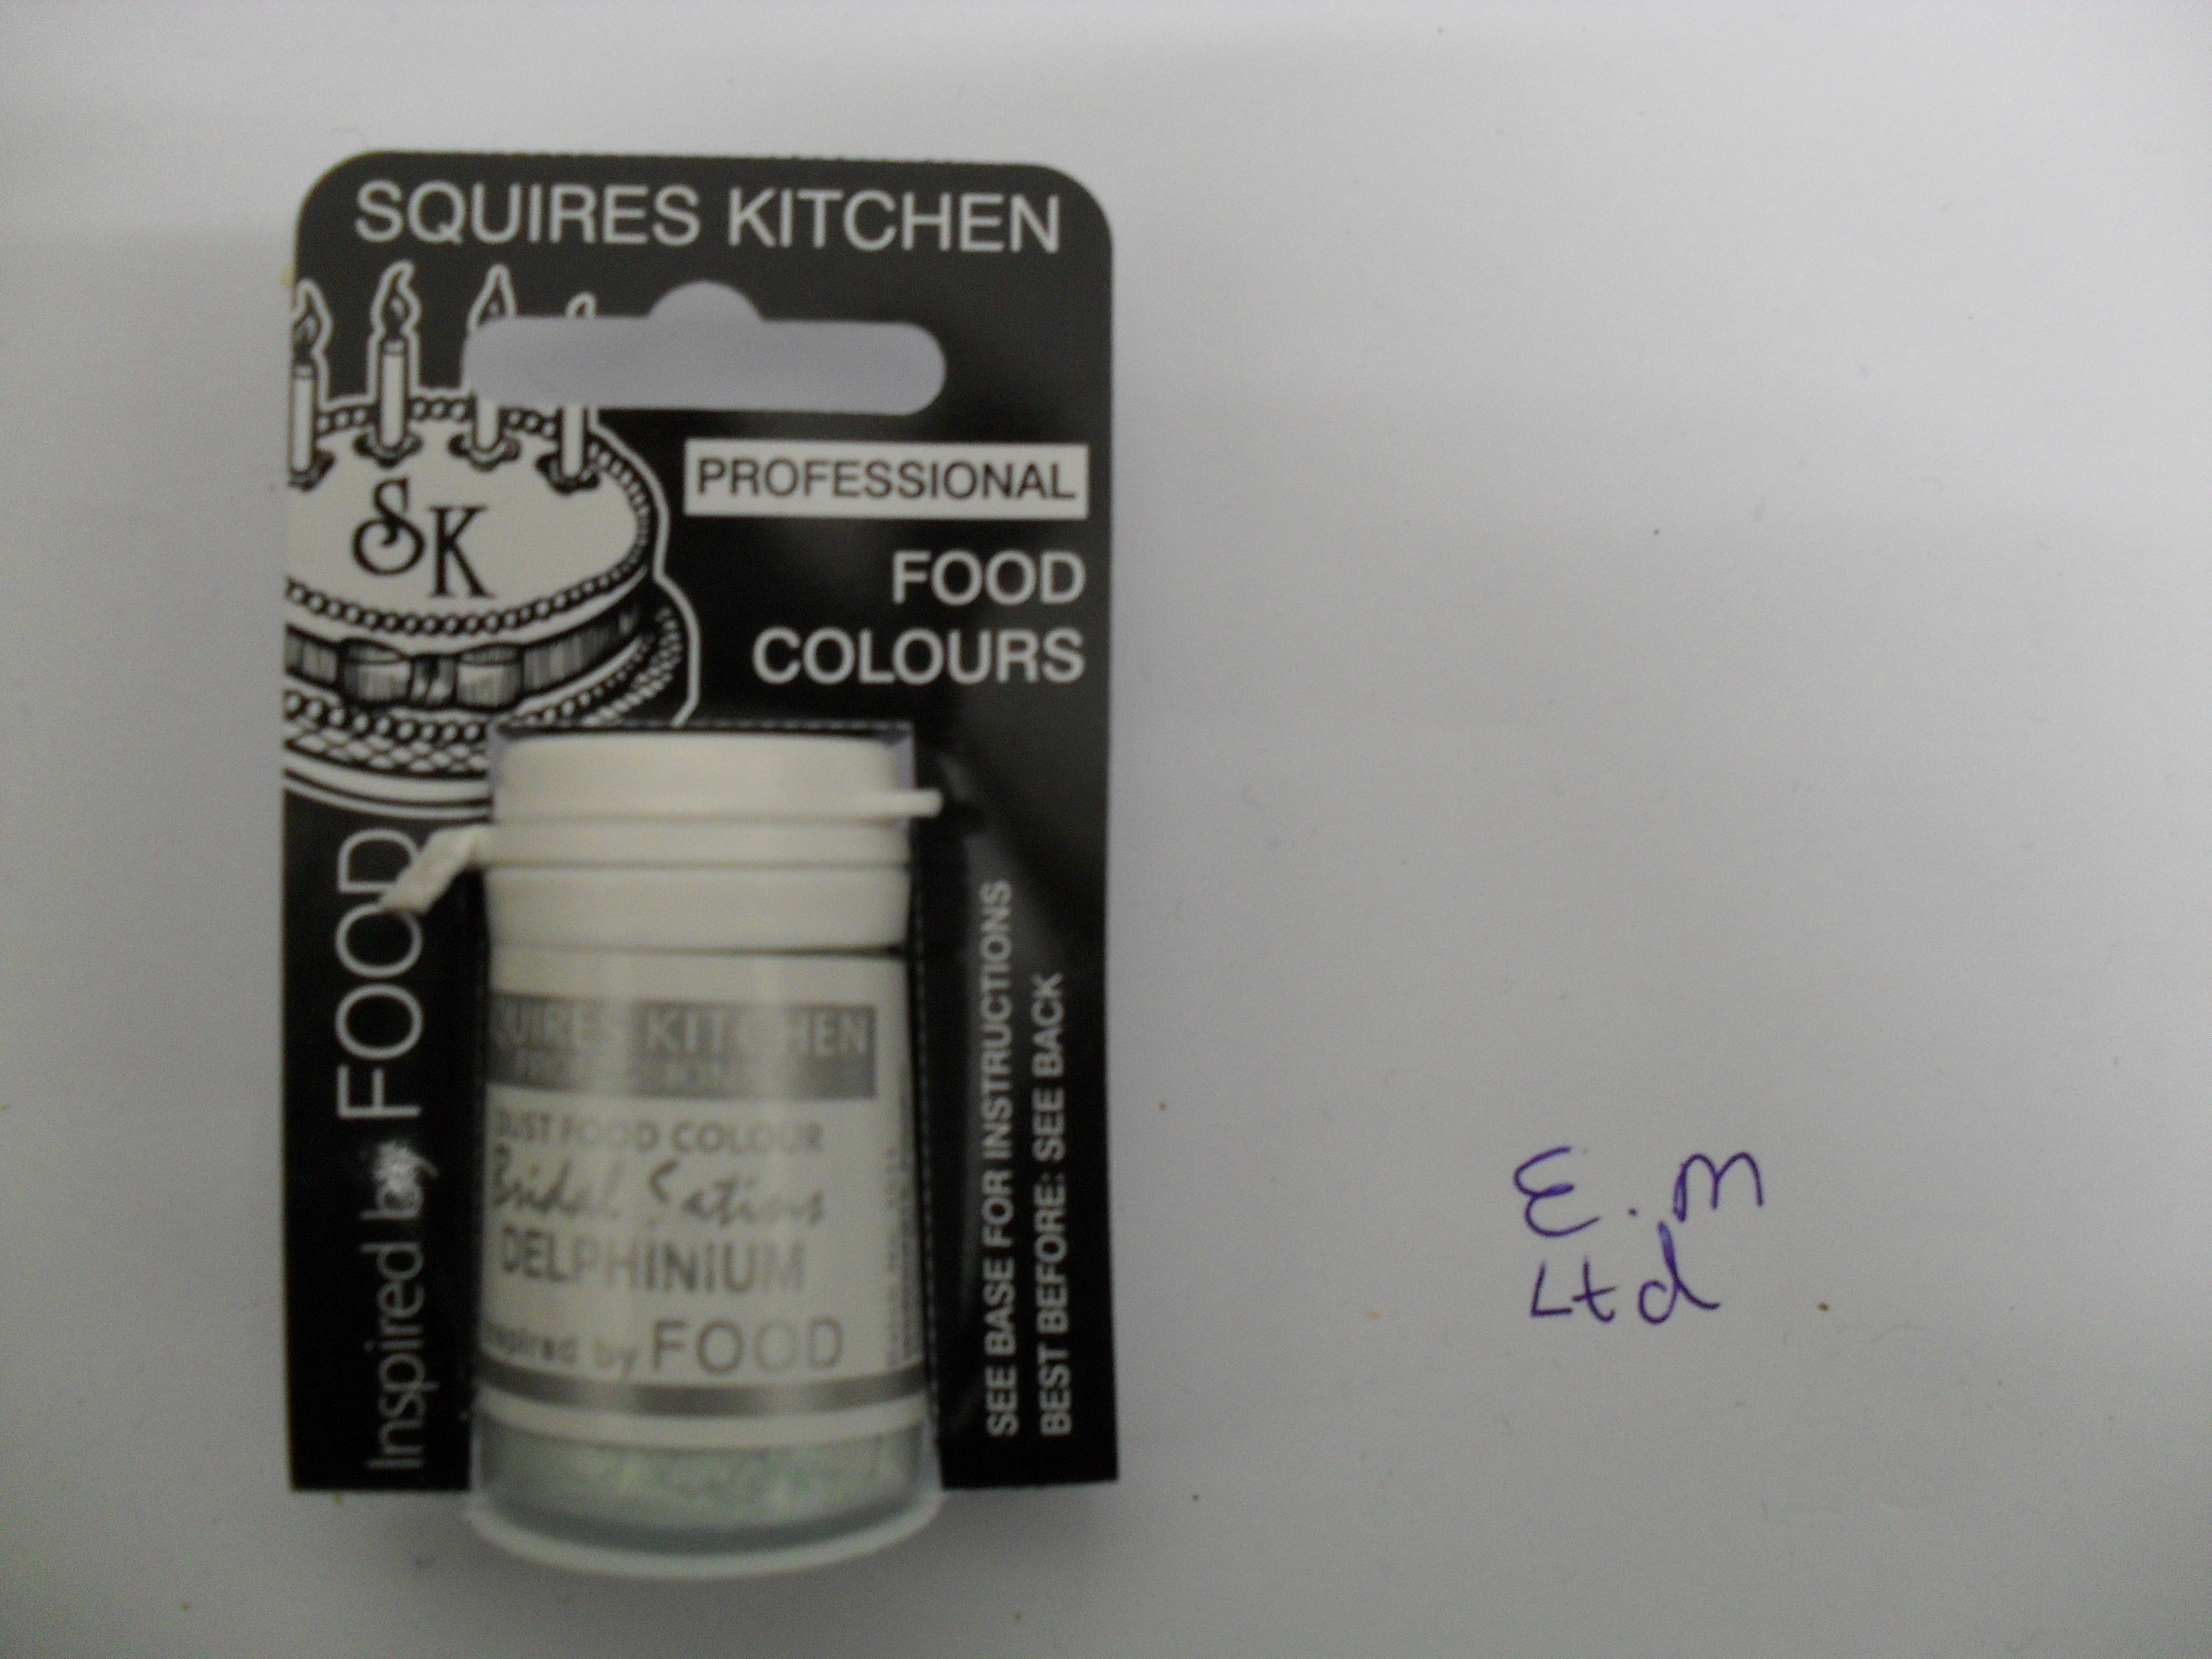 Squires Kitchen BRIDAL SATINS Edible Food Dust Powder Colouring 4G Enlarged Preview